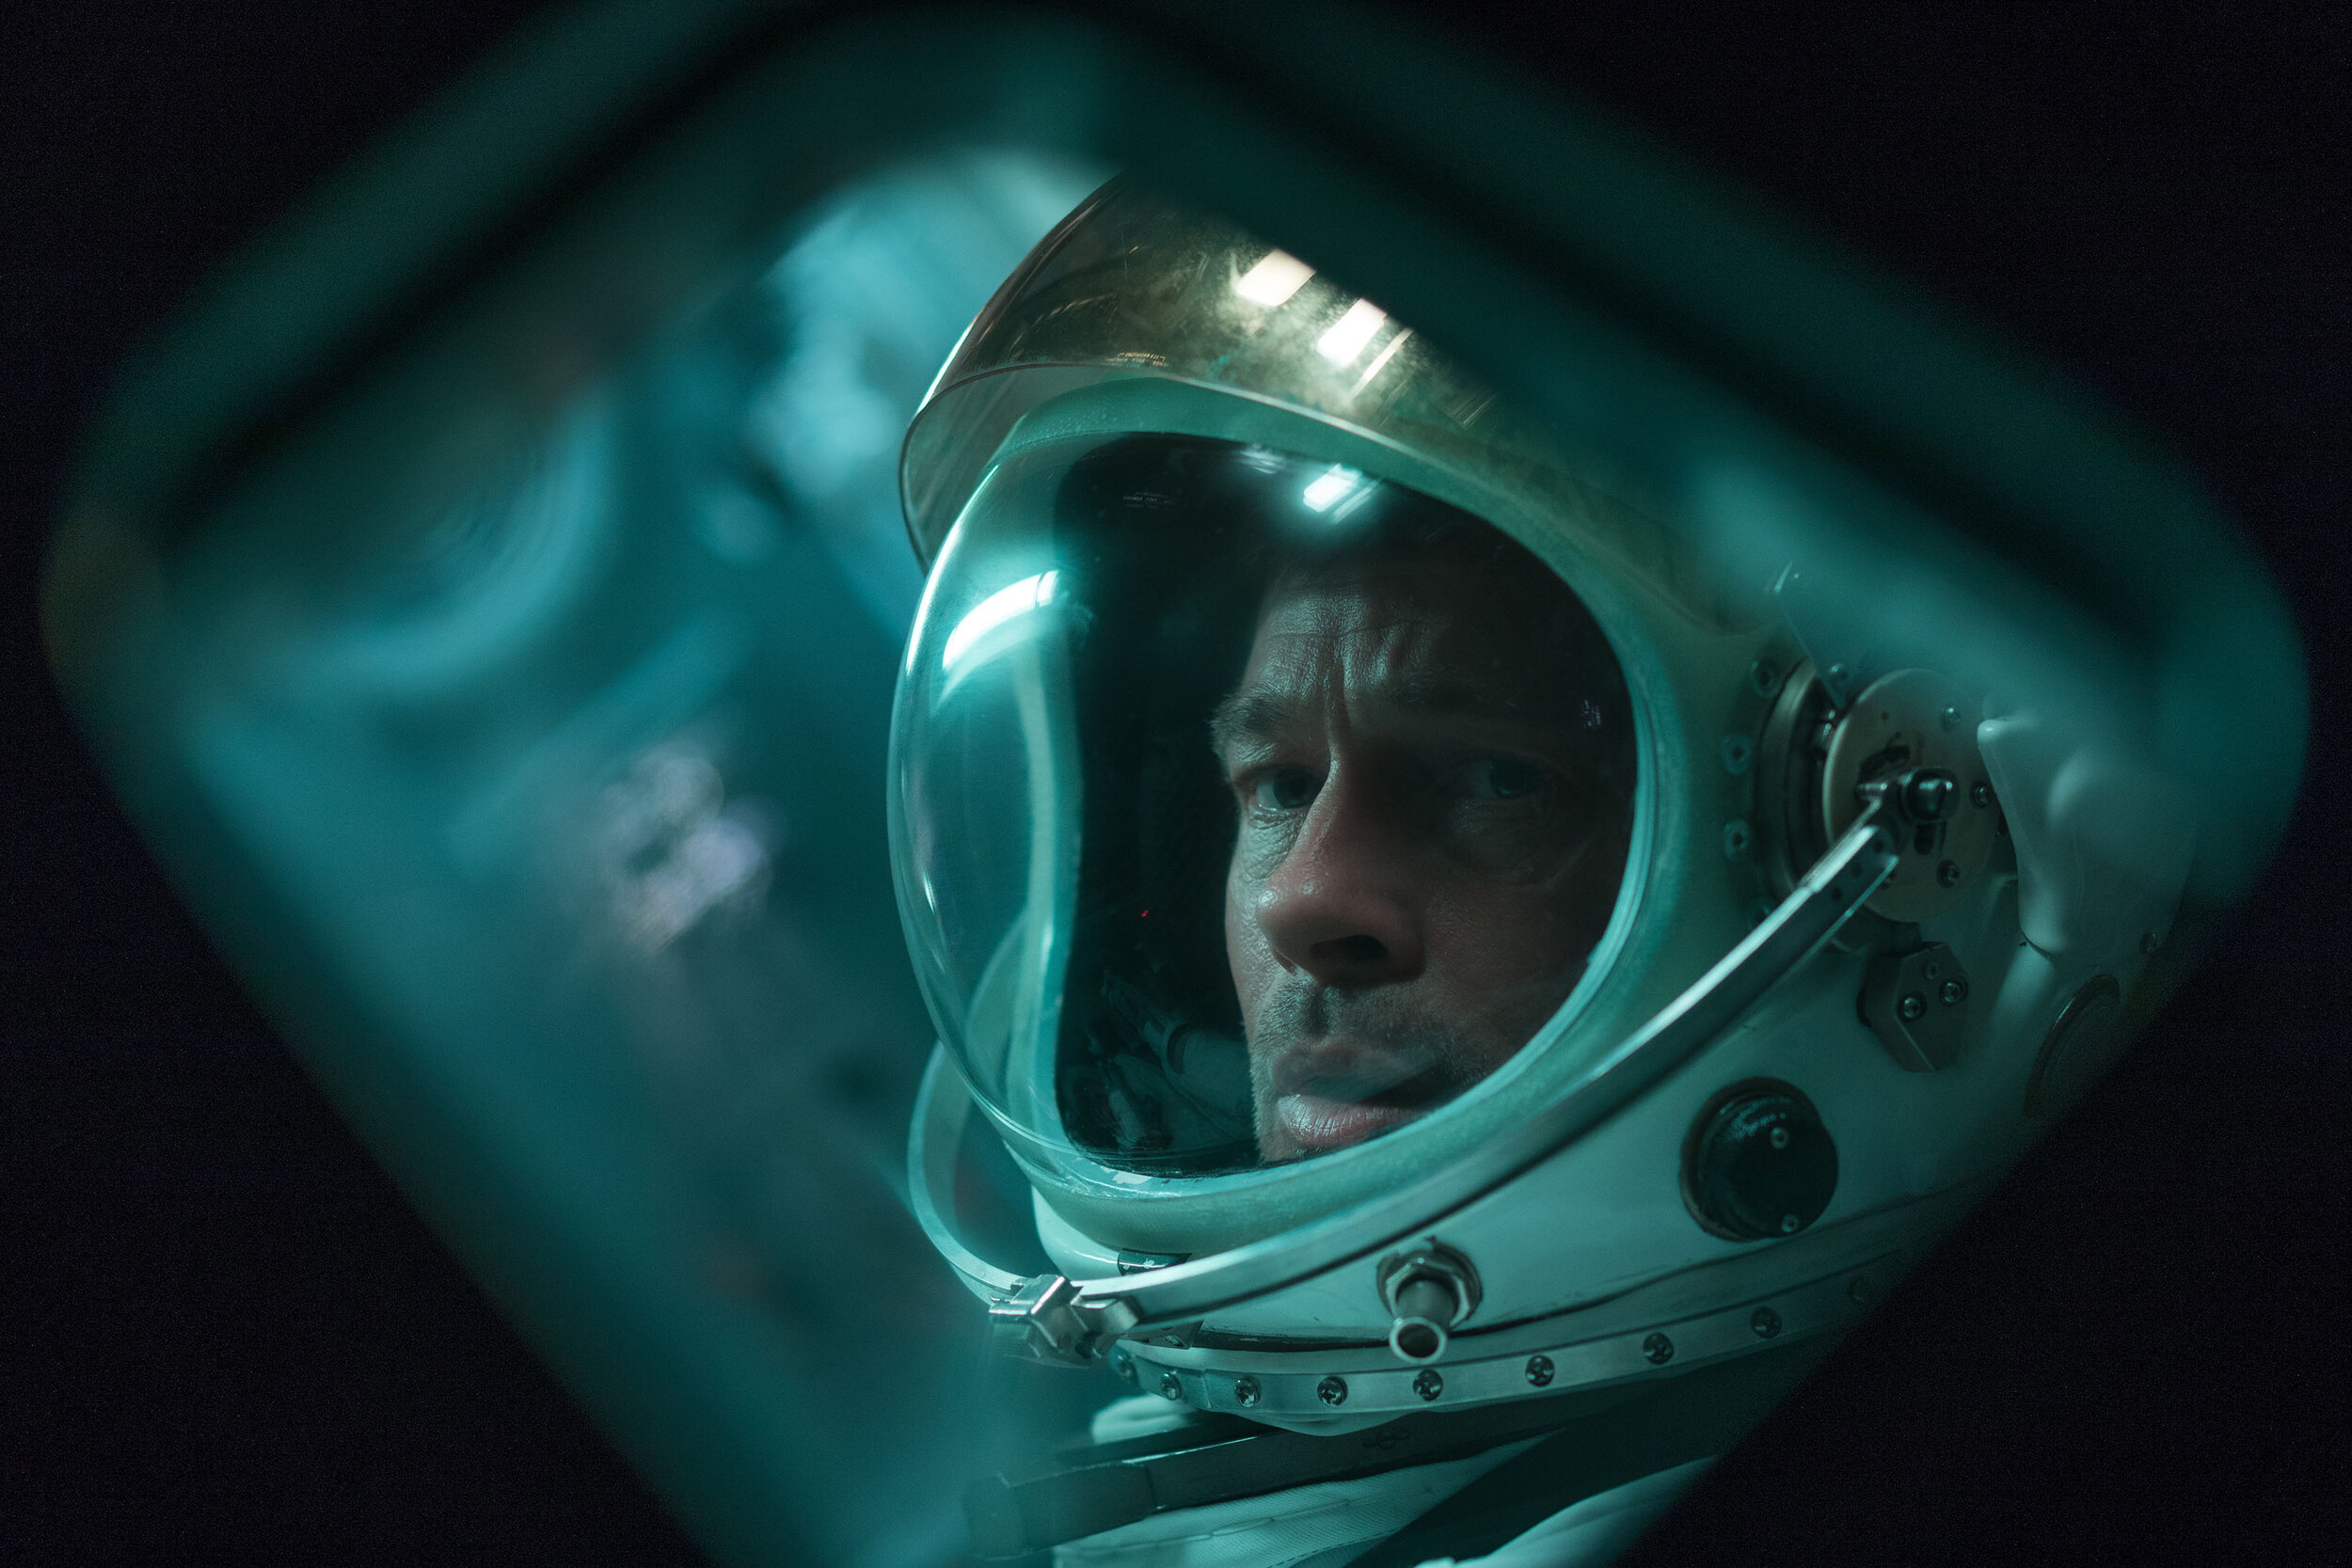 """Brad Pitt plays Maj. Roy McBride, an astronaut sent to locate his missing father (Tommy Lee Jones), in the science-fiction drama """"Ad Astra."""" (Photo by Francois Duhamel, courtesy of 20th Century Fox.)"""